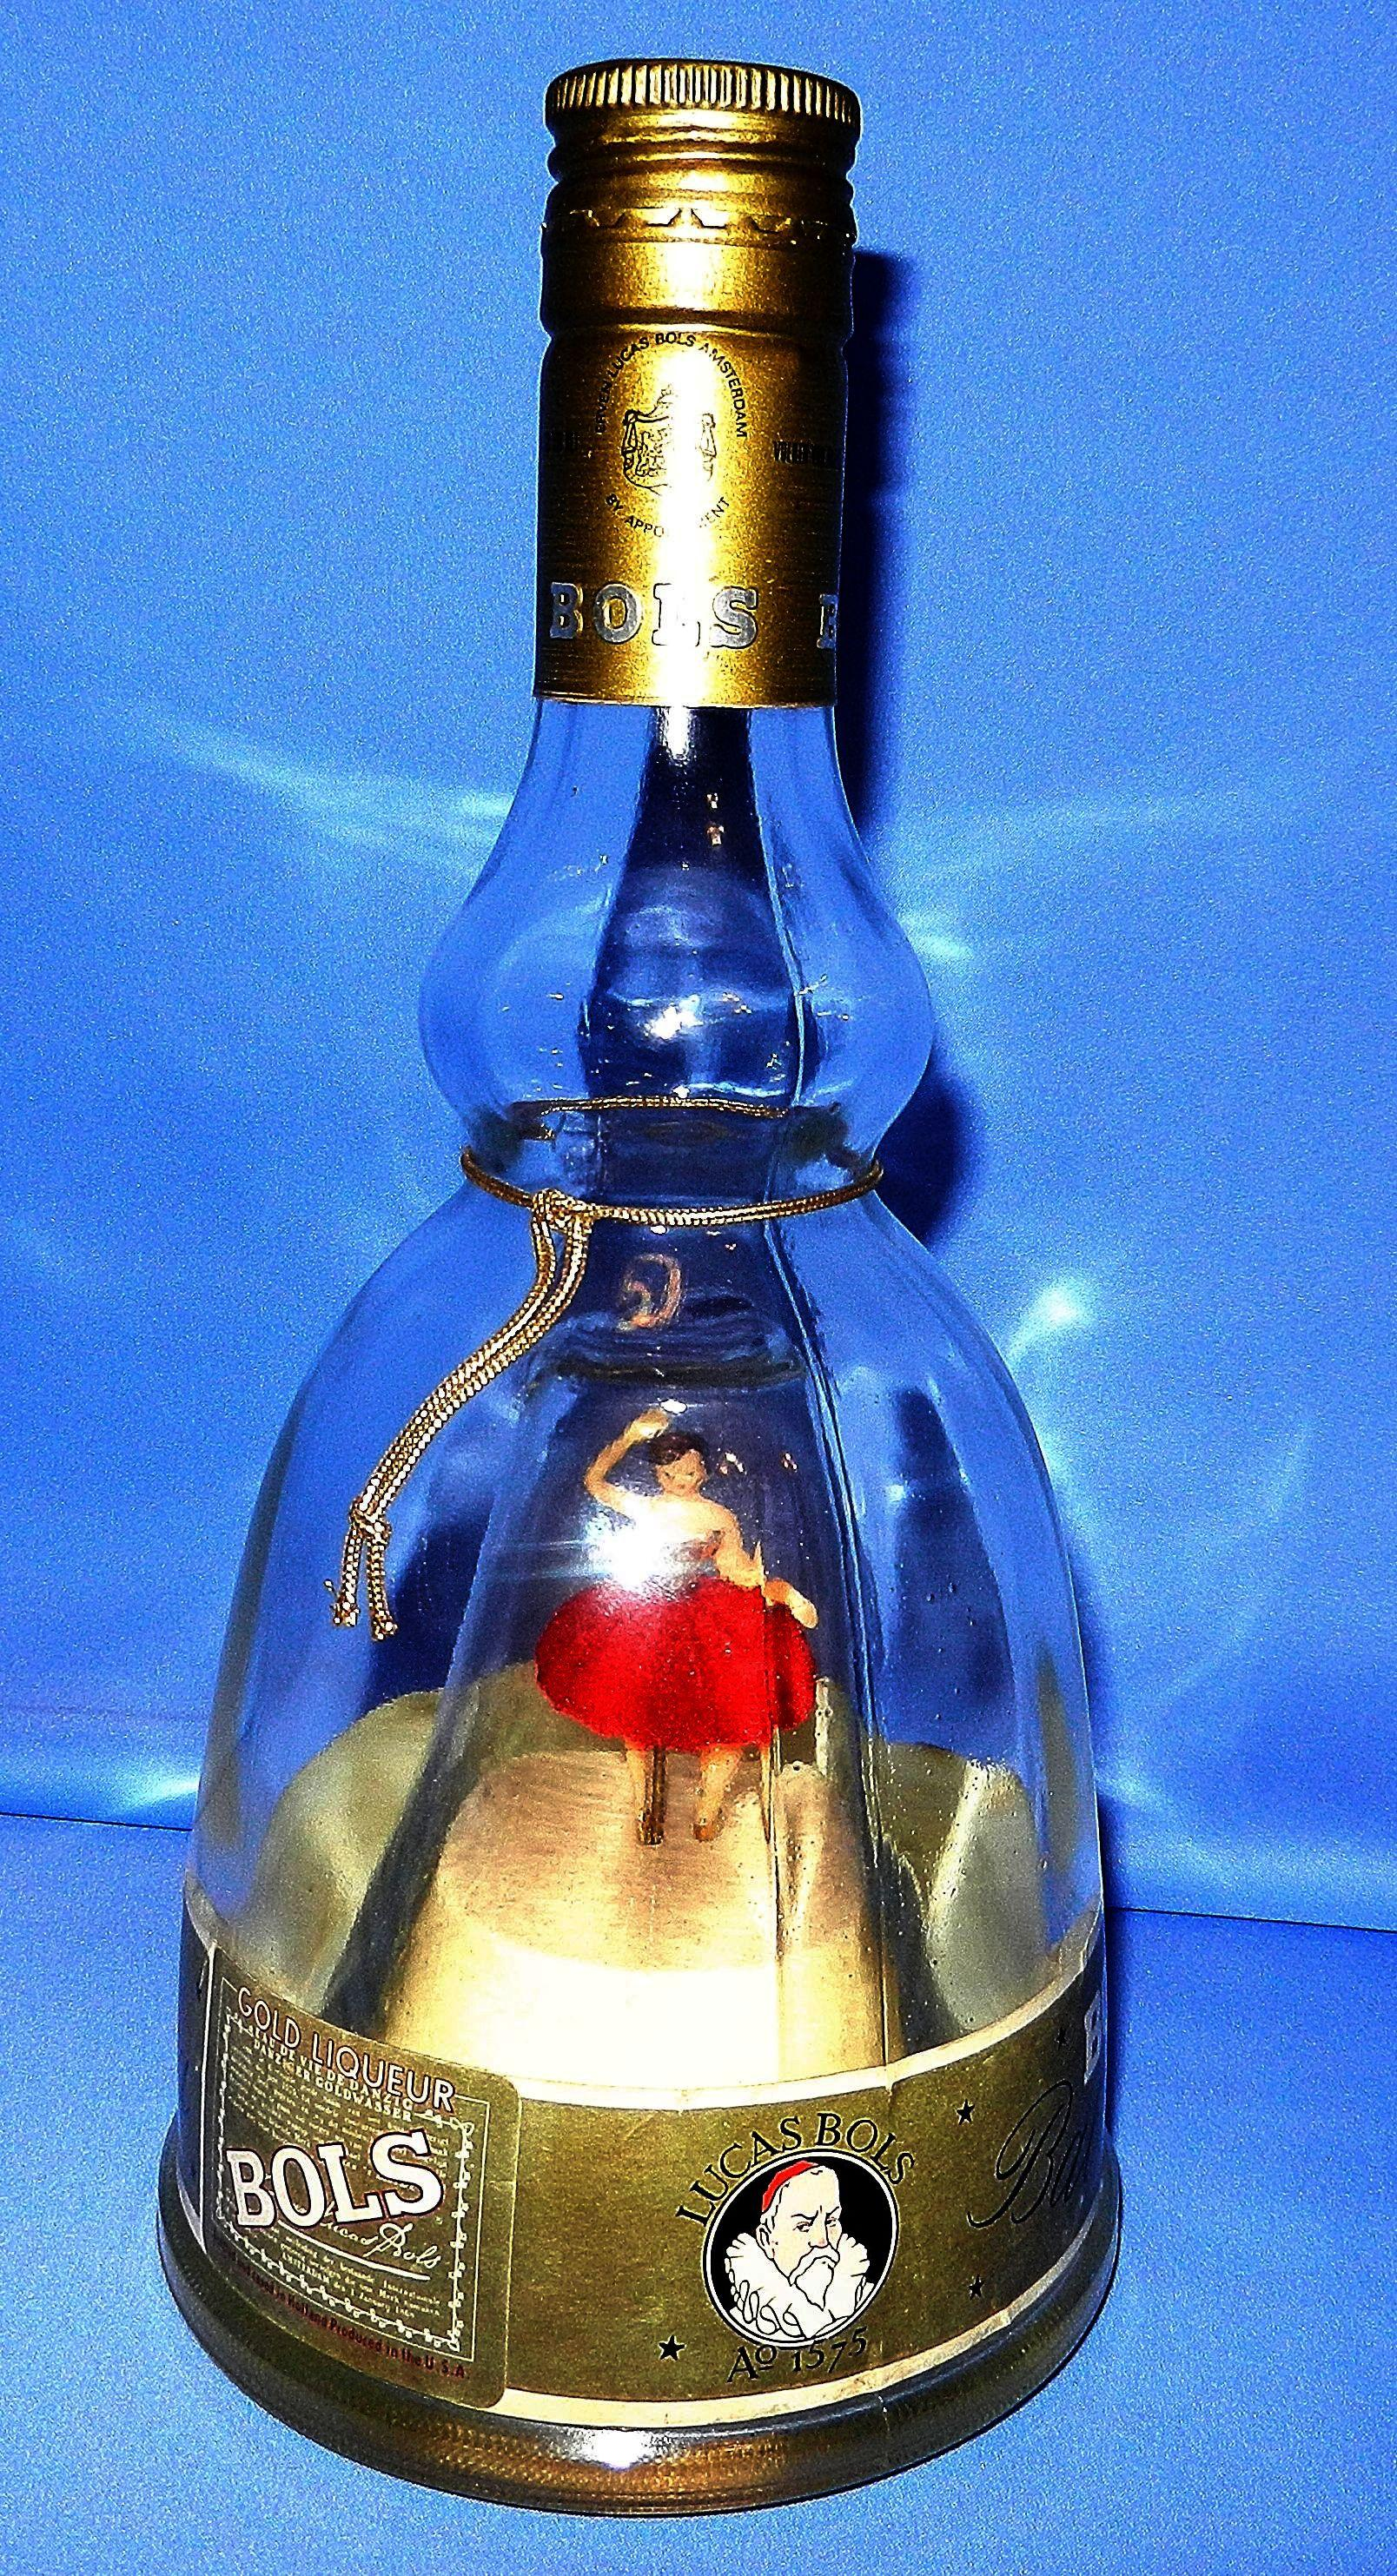 Vintage Bols Ballerina Music Box Liquor Bottle From